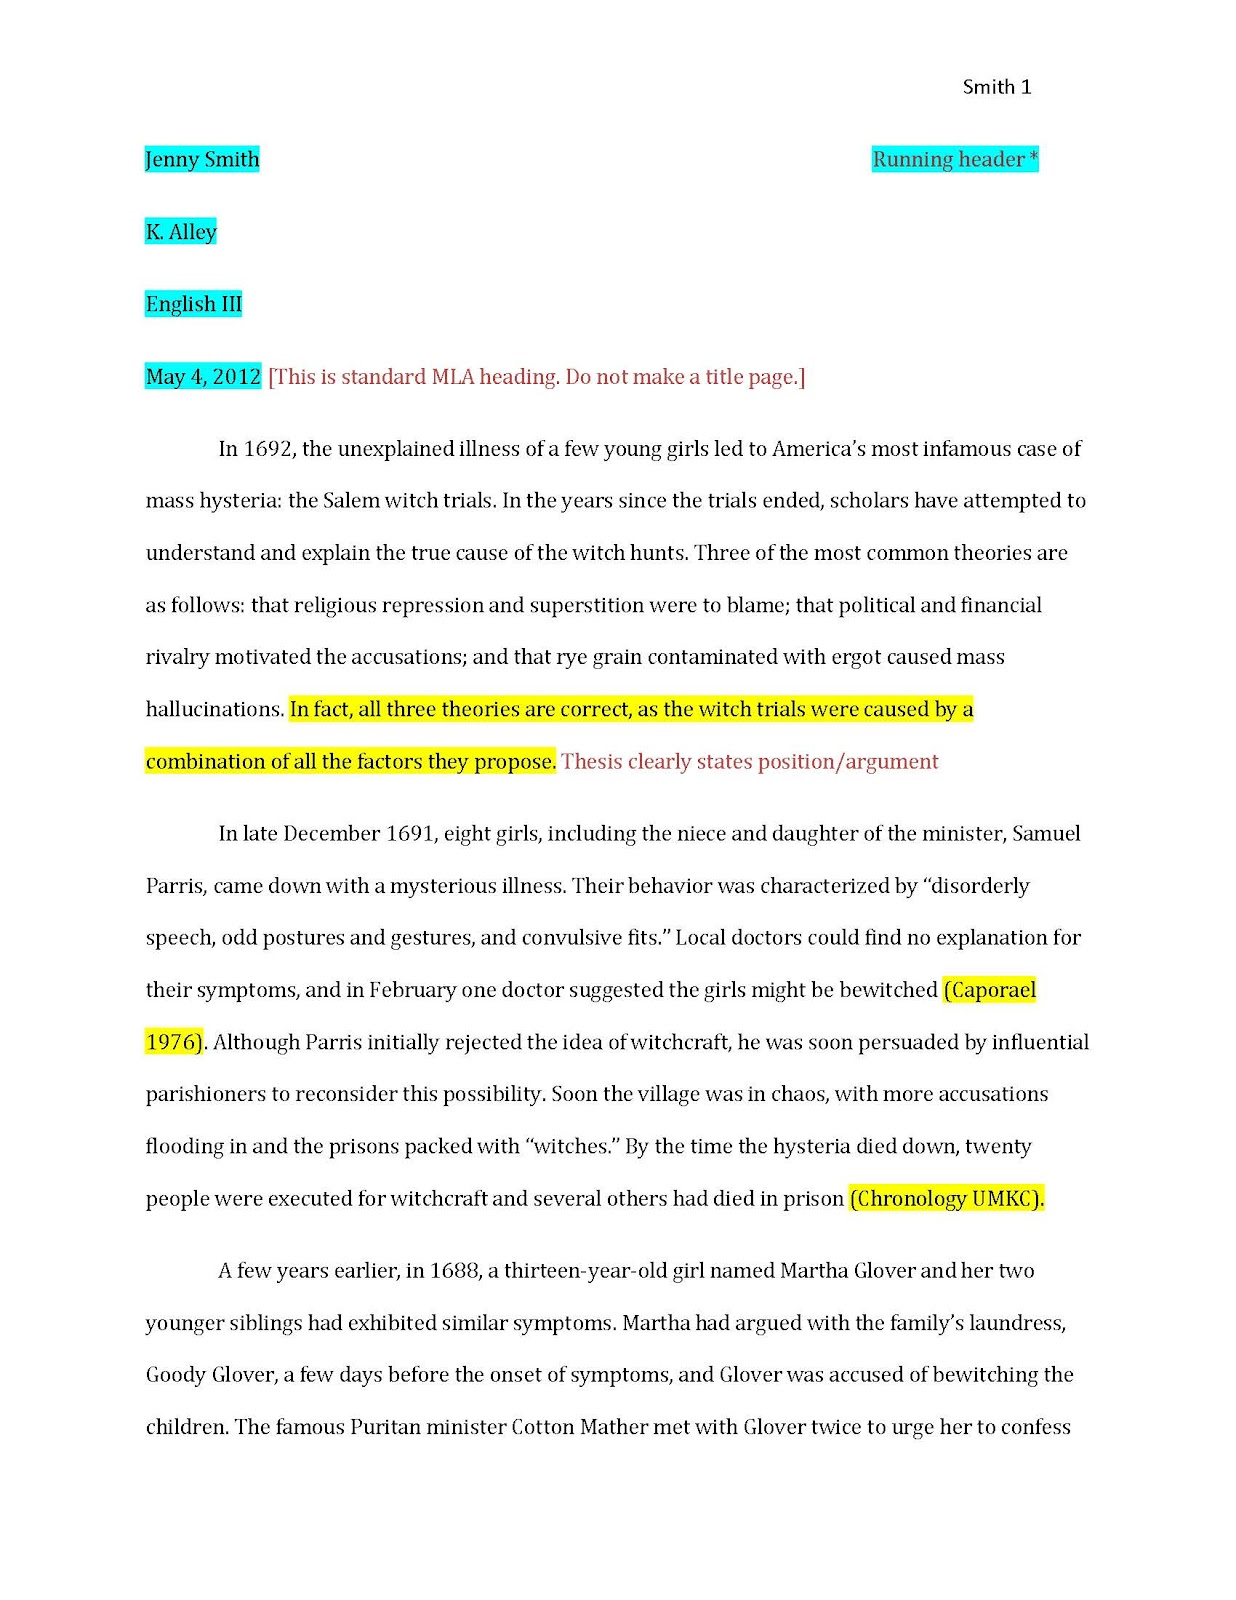 research paper 24 7 research paper for 24 7 live chat seasonal